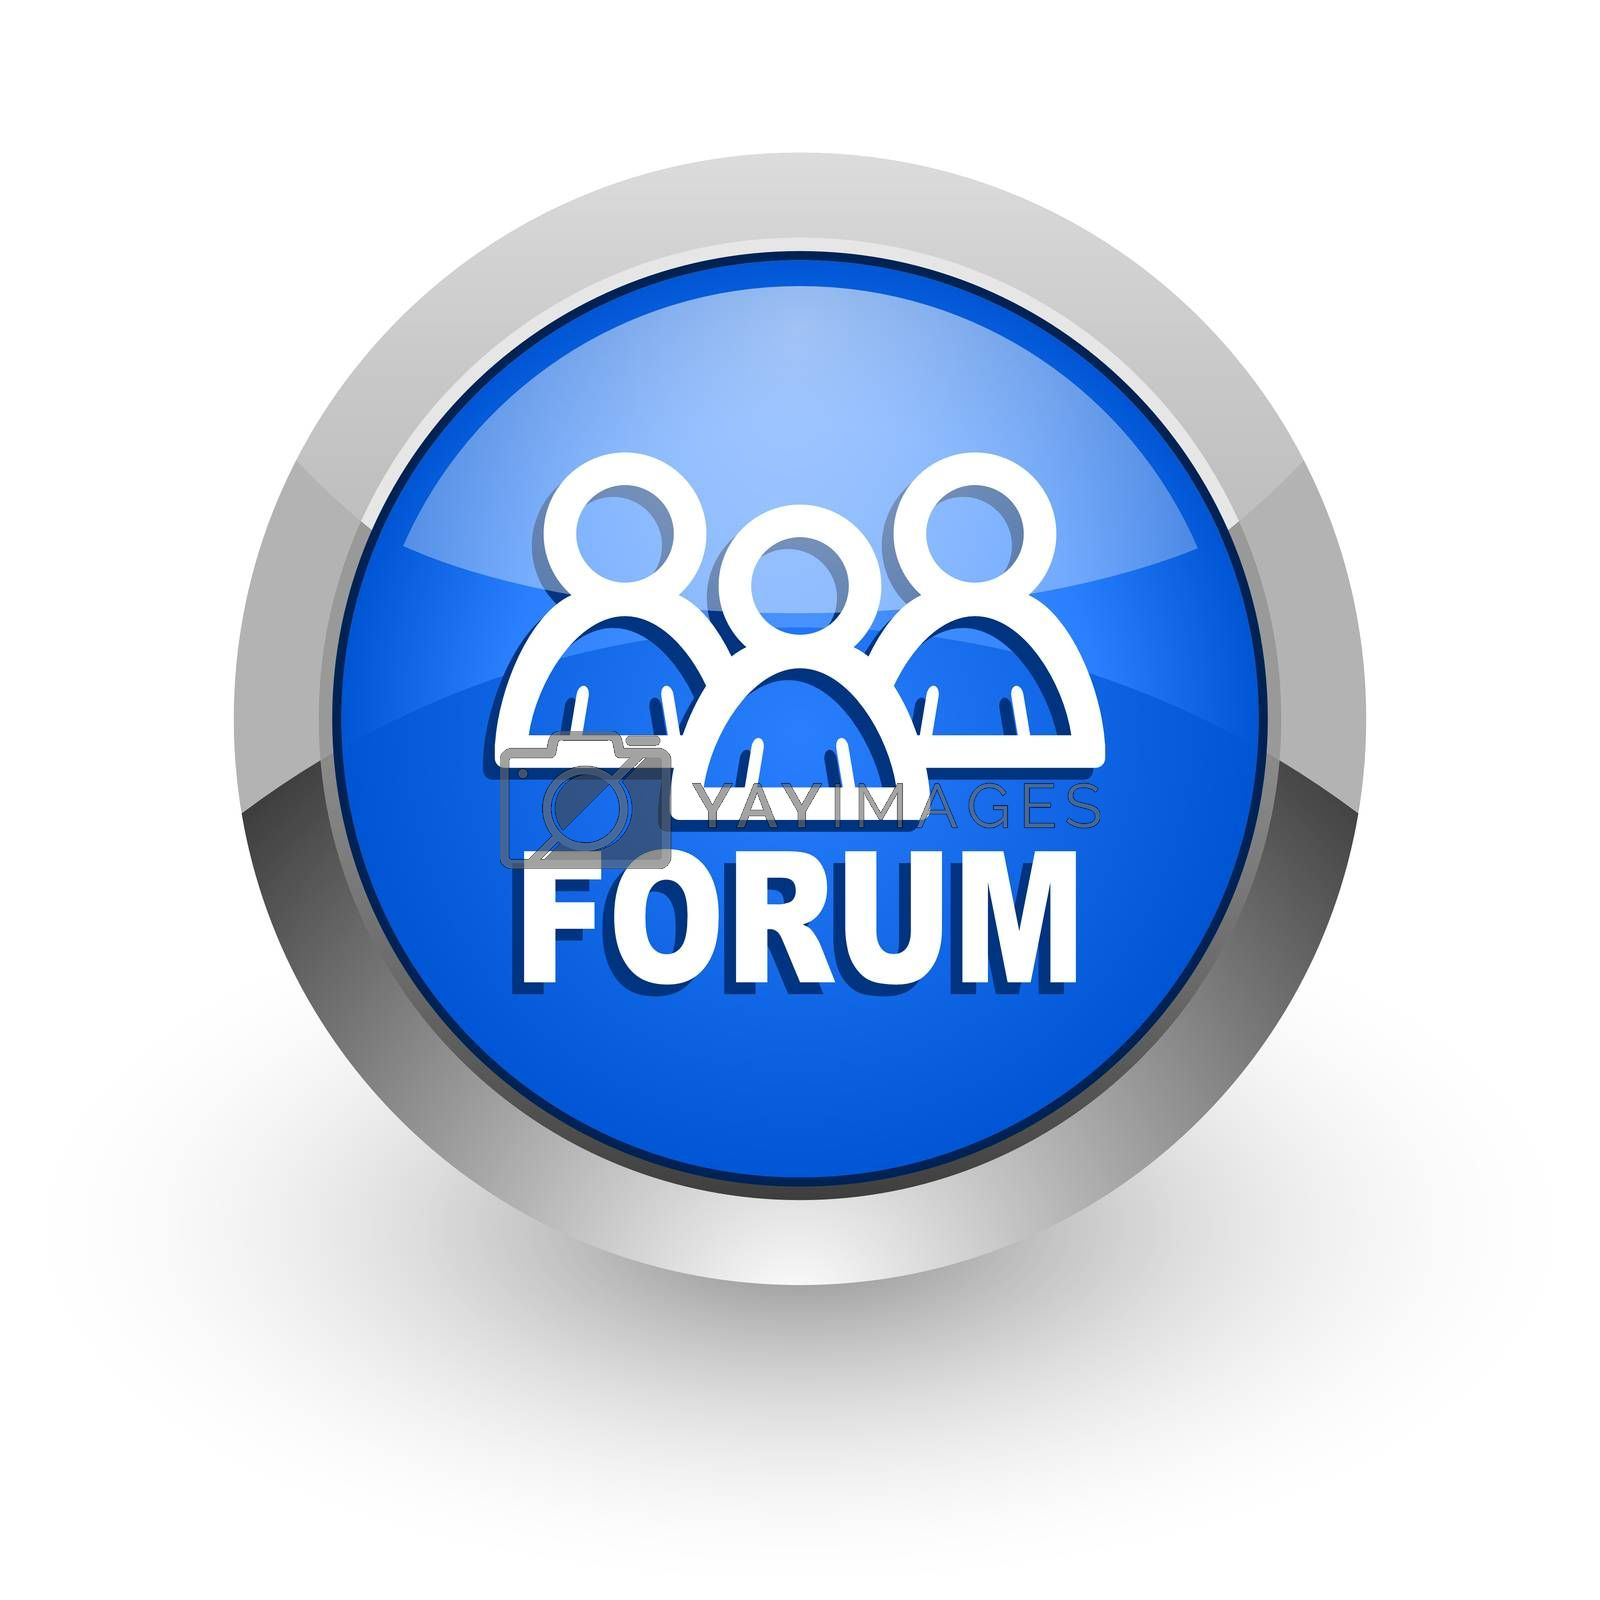 Royalty free image of forum blue glossy web icon by alexwhite